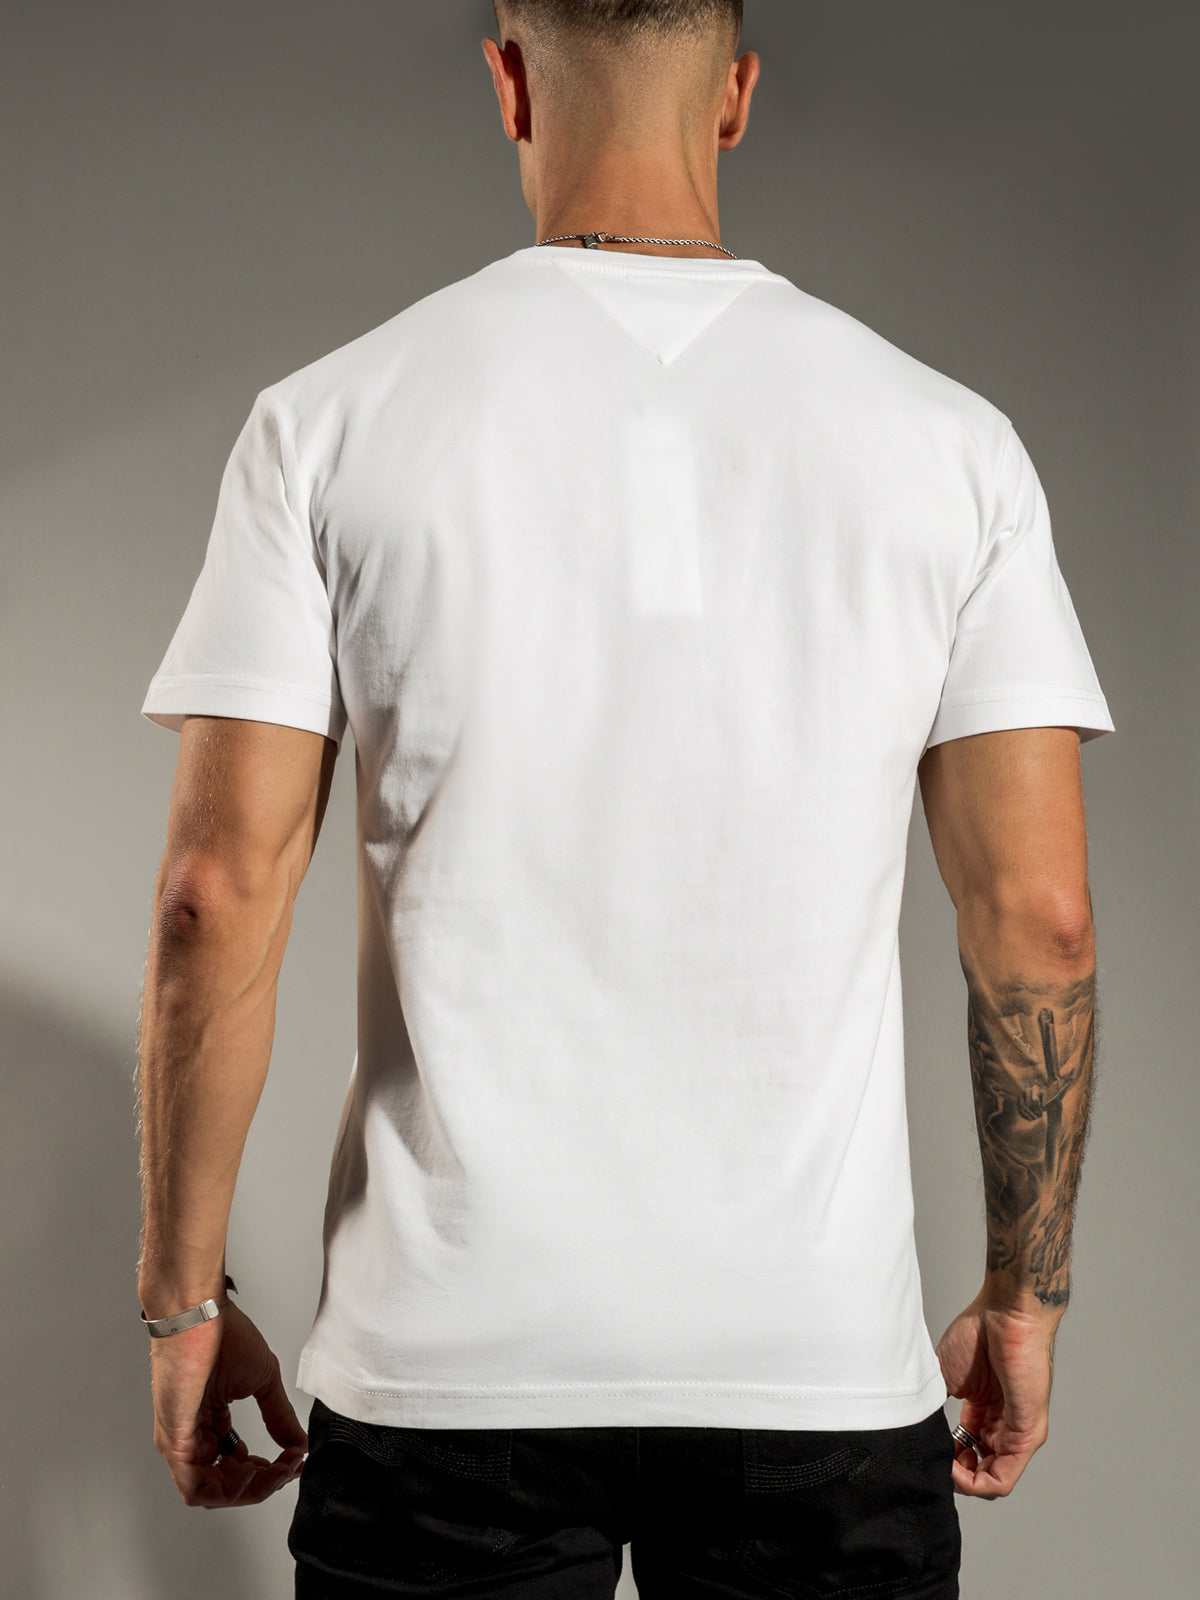 Embroidered Mountain T-Shirt In White